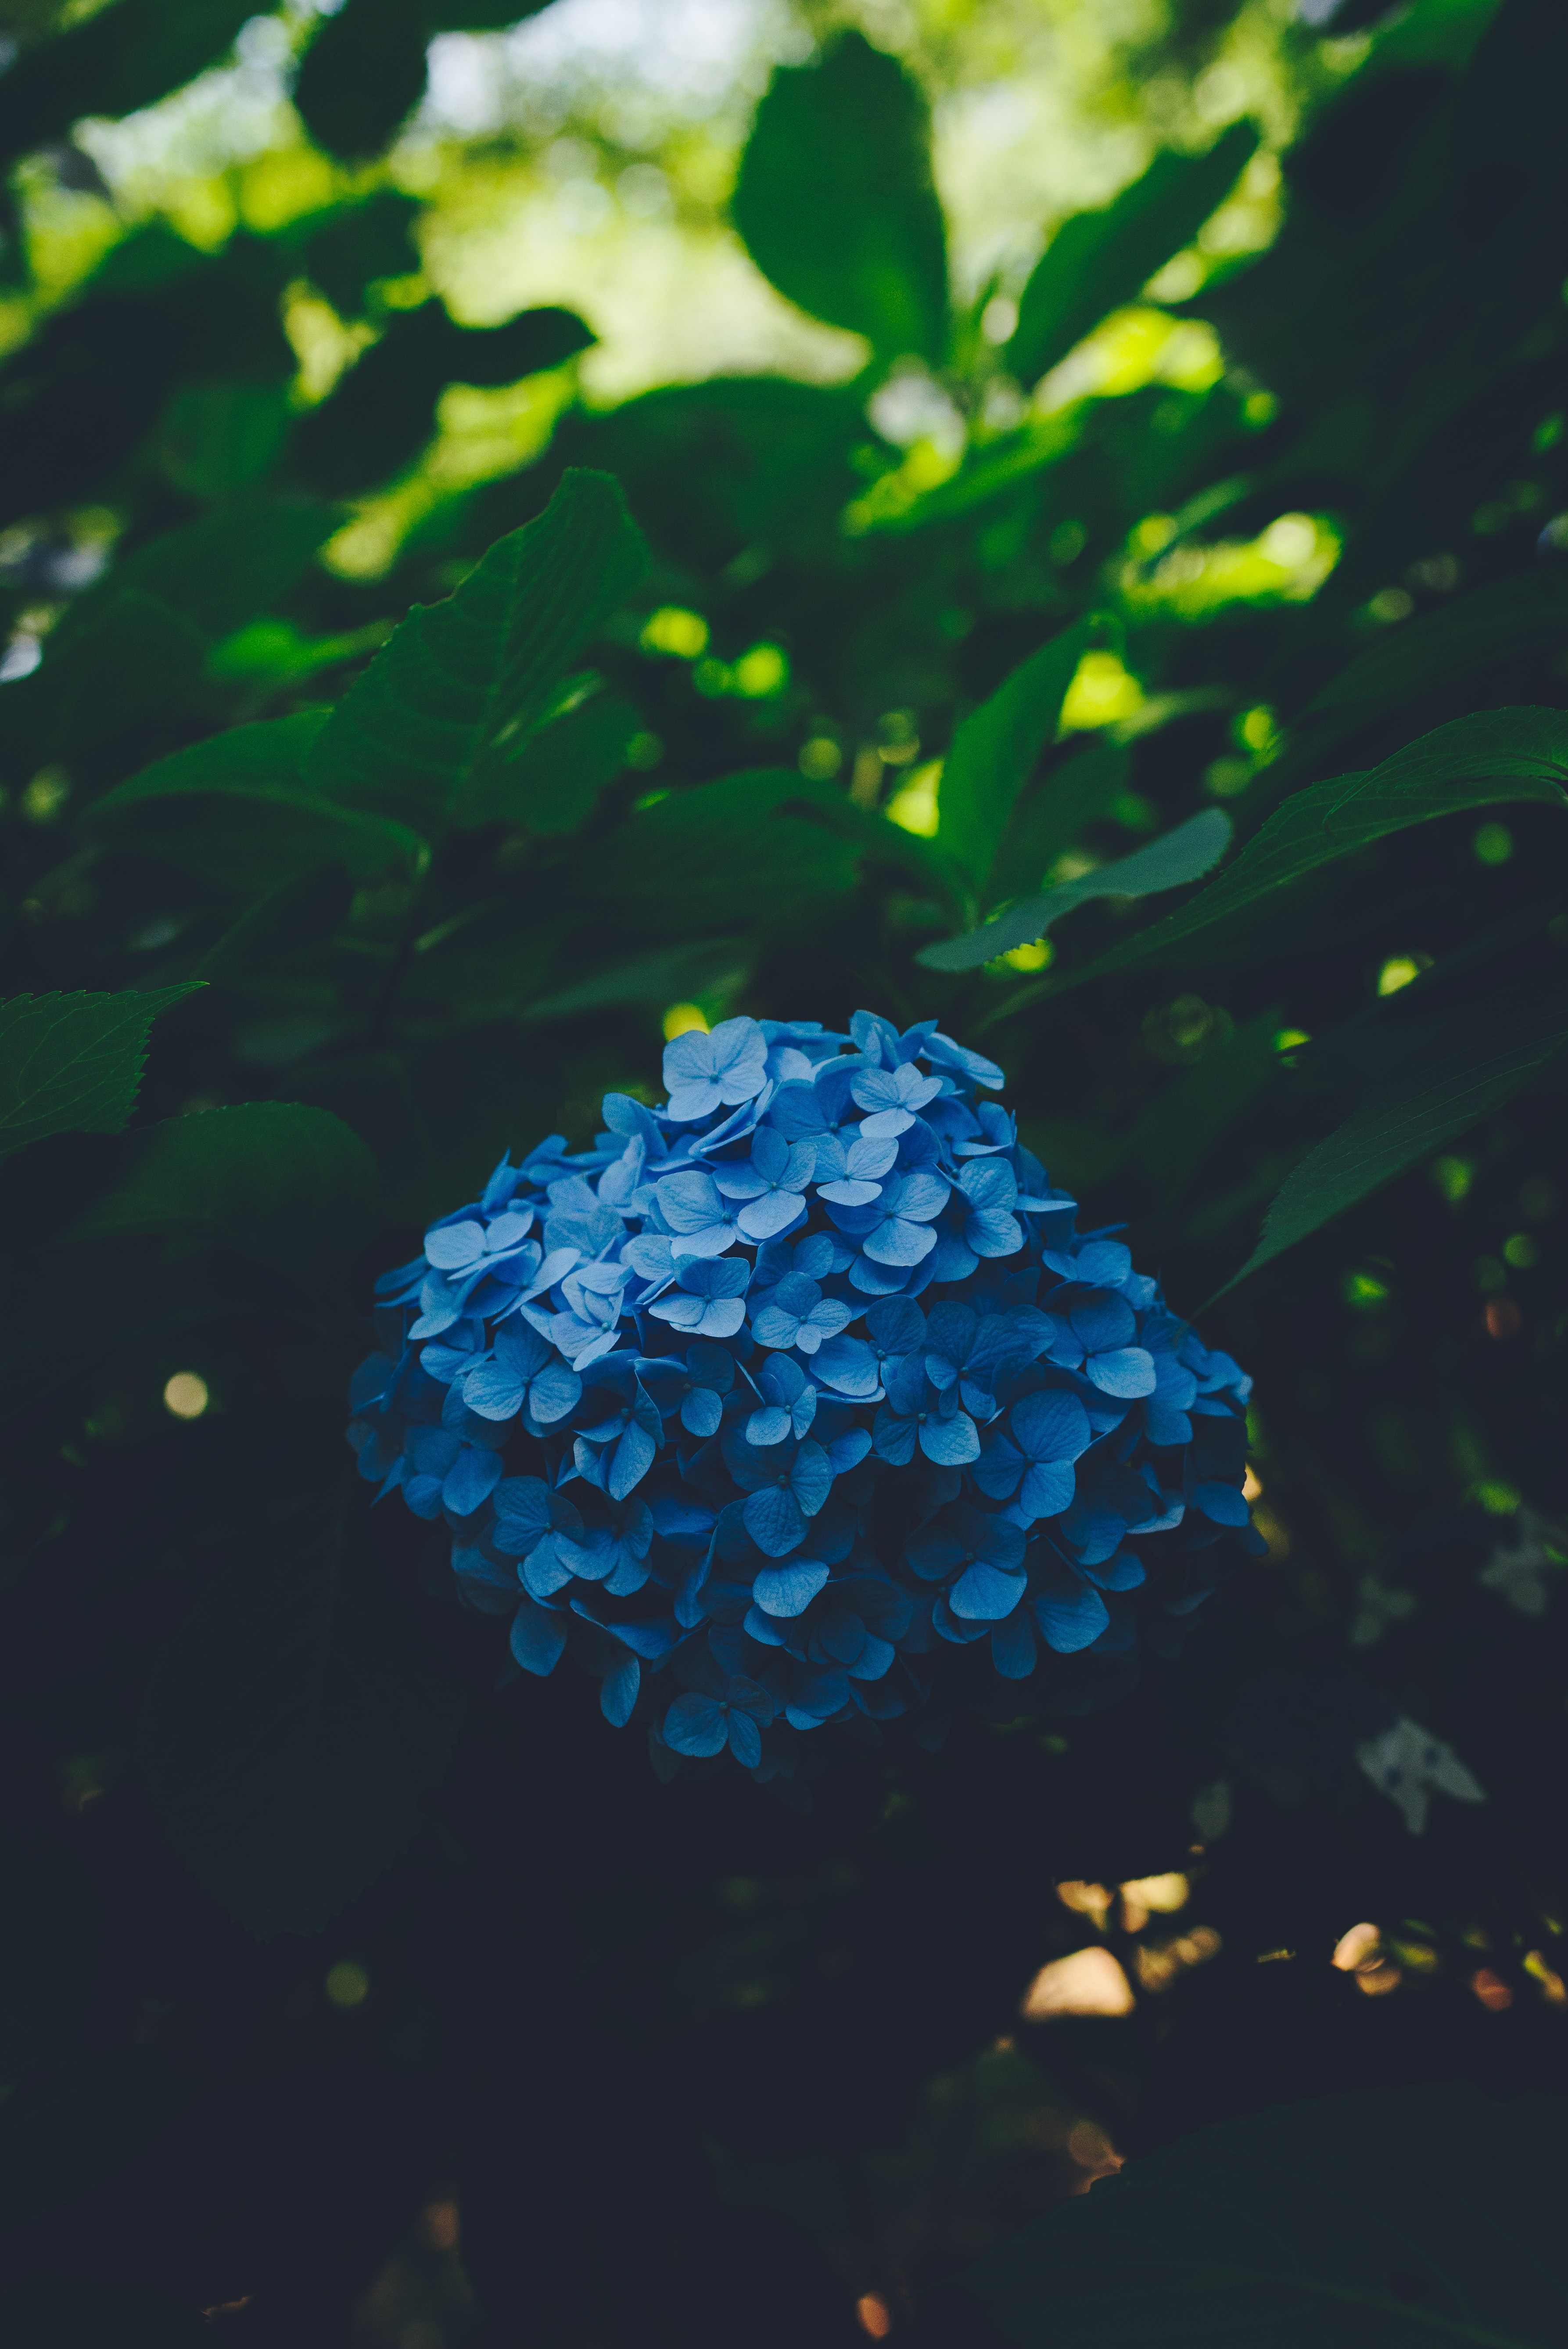 blue flowers surrounded of leafs